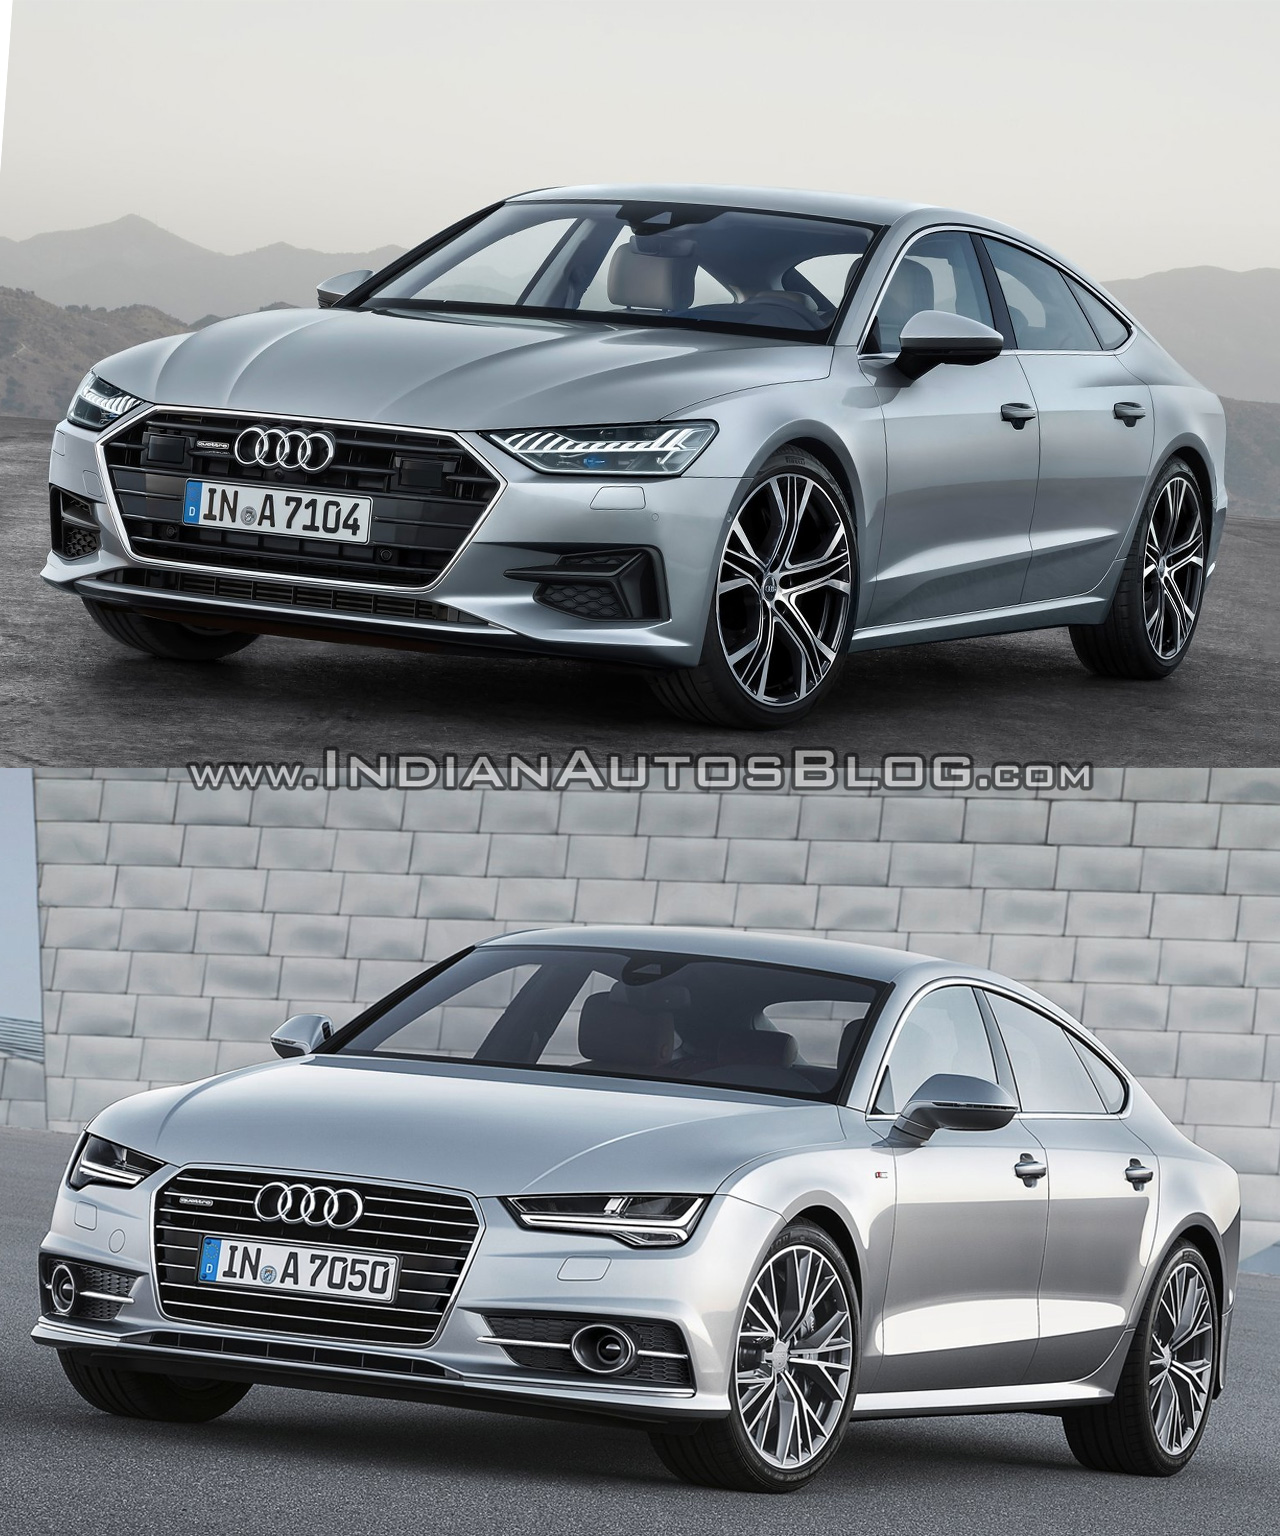 2018 audi a7 sportback vs 2014 audi a7 sportback old vs. Black Bedroom Furniture Sets. Home Design Ideas